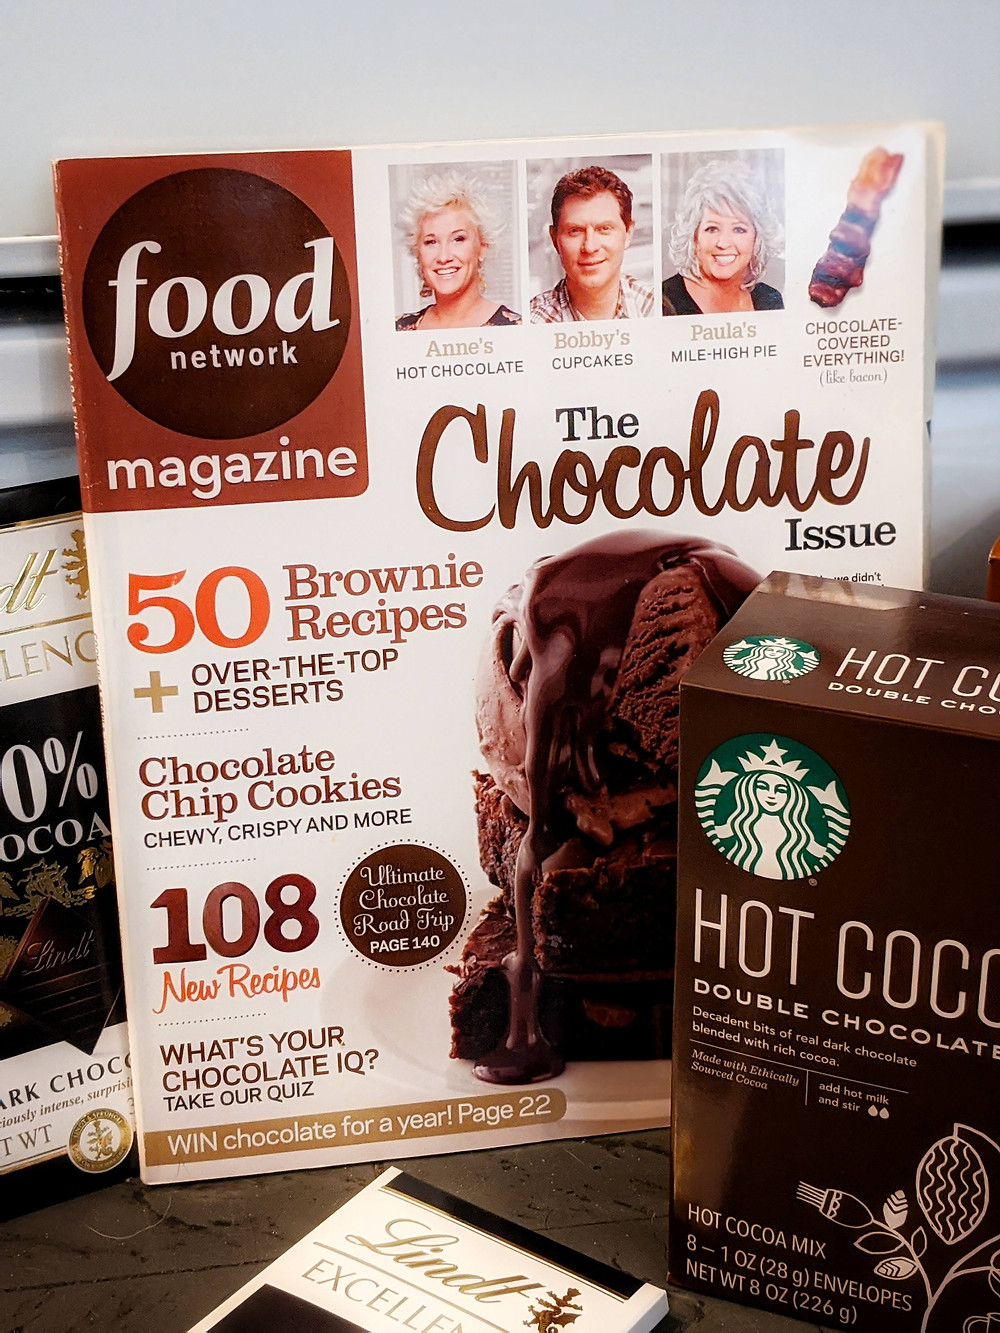 magazine with chocolate ice cream and chocolate brownies on cover by food network. Also Starbuck's hot chocolate mix in photo